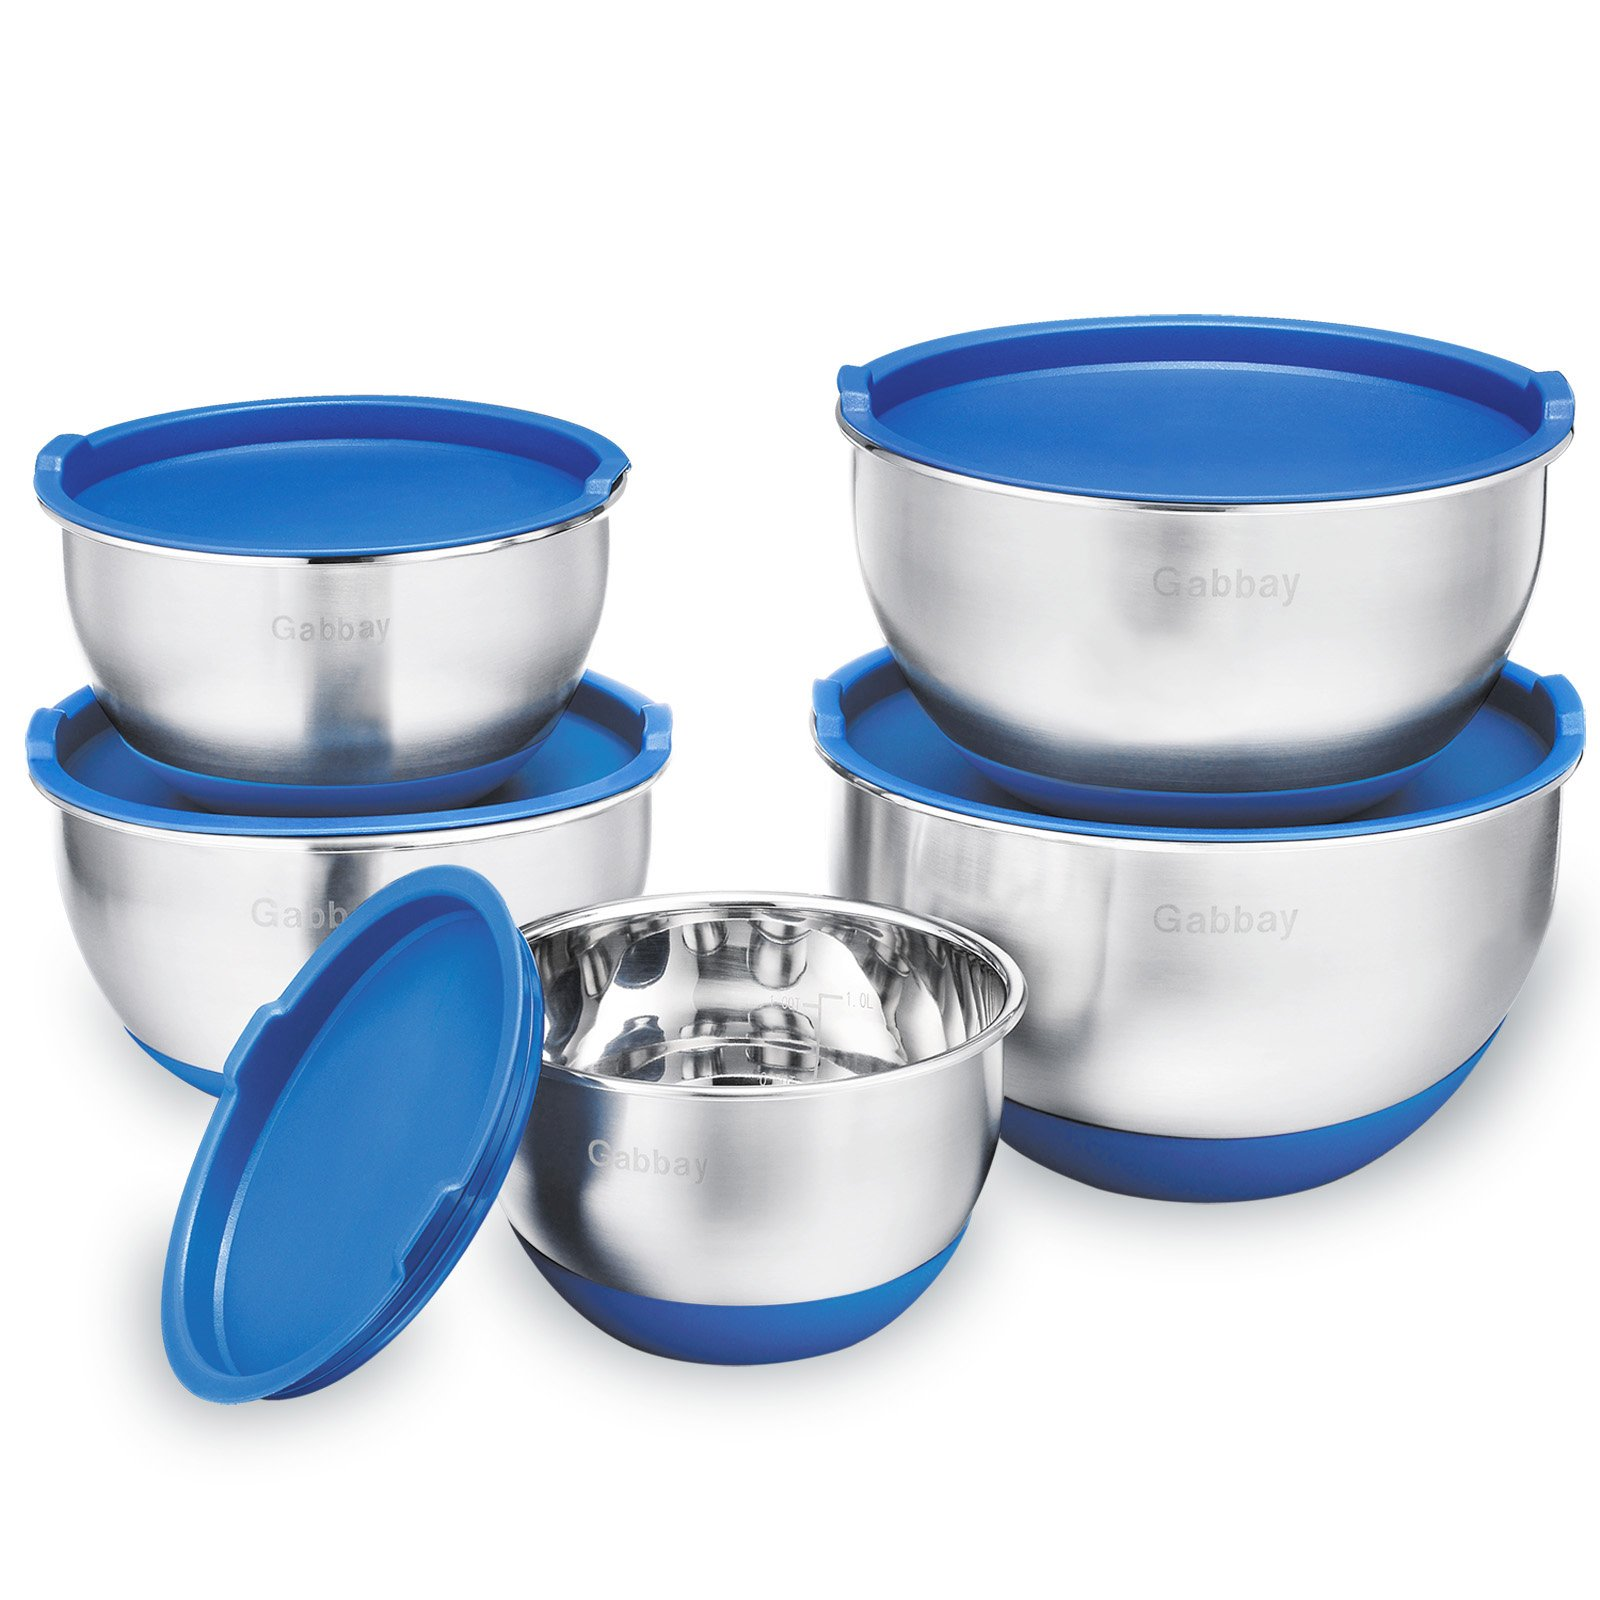 5 Piece Stainless Steel Mixing Bowls Set With Lids, Non-Slip Silicone Bottom, Stackable For Minimal Storage by Gabbay- 1 ,2 ,2.5 ,3.5 ,4.5 Qt.